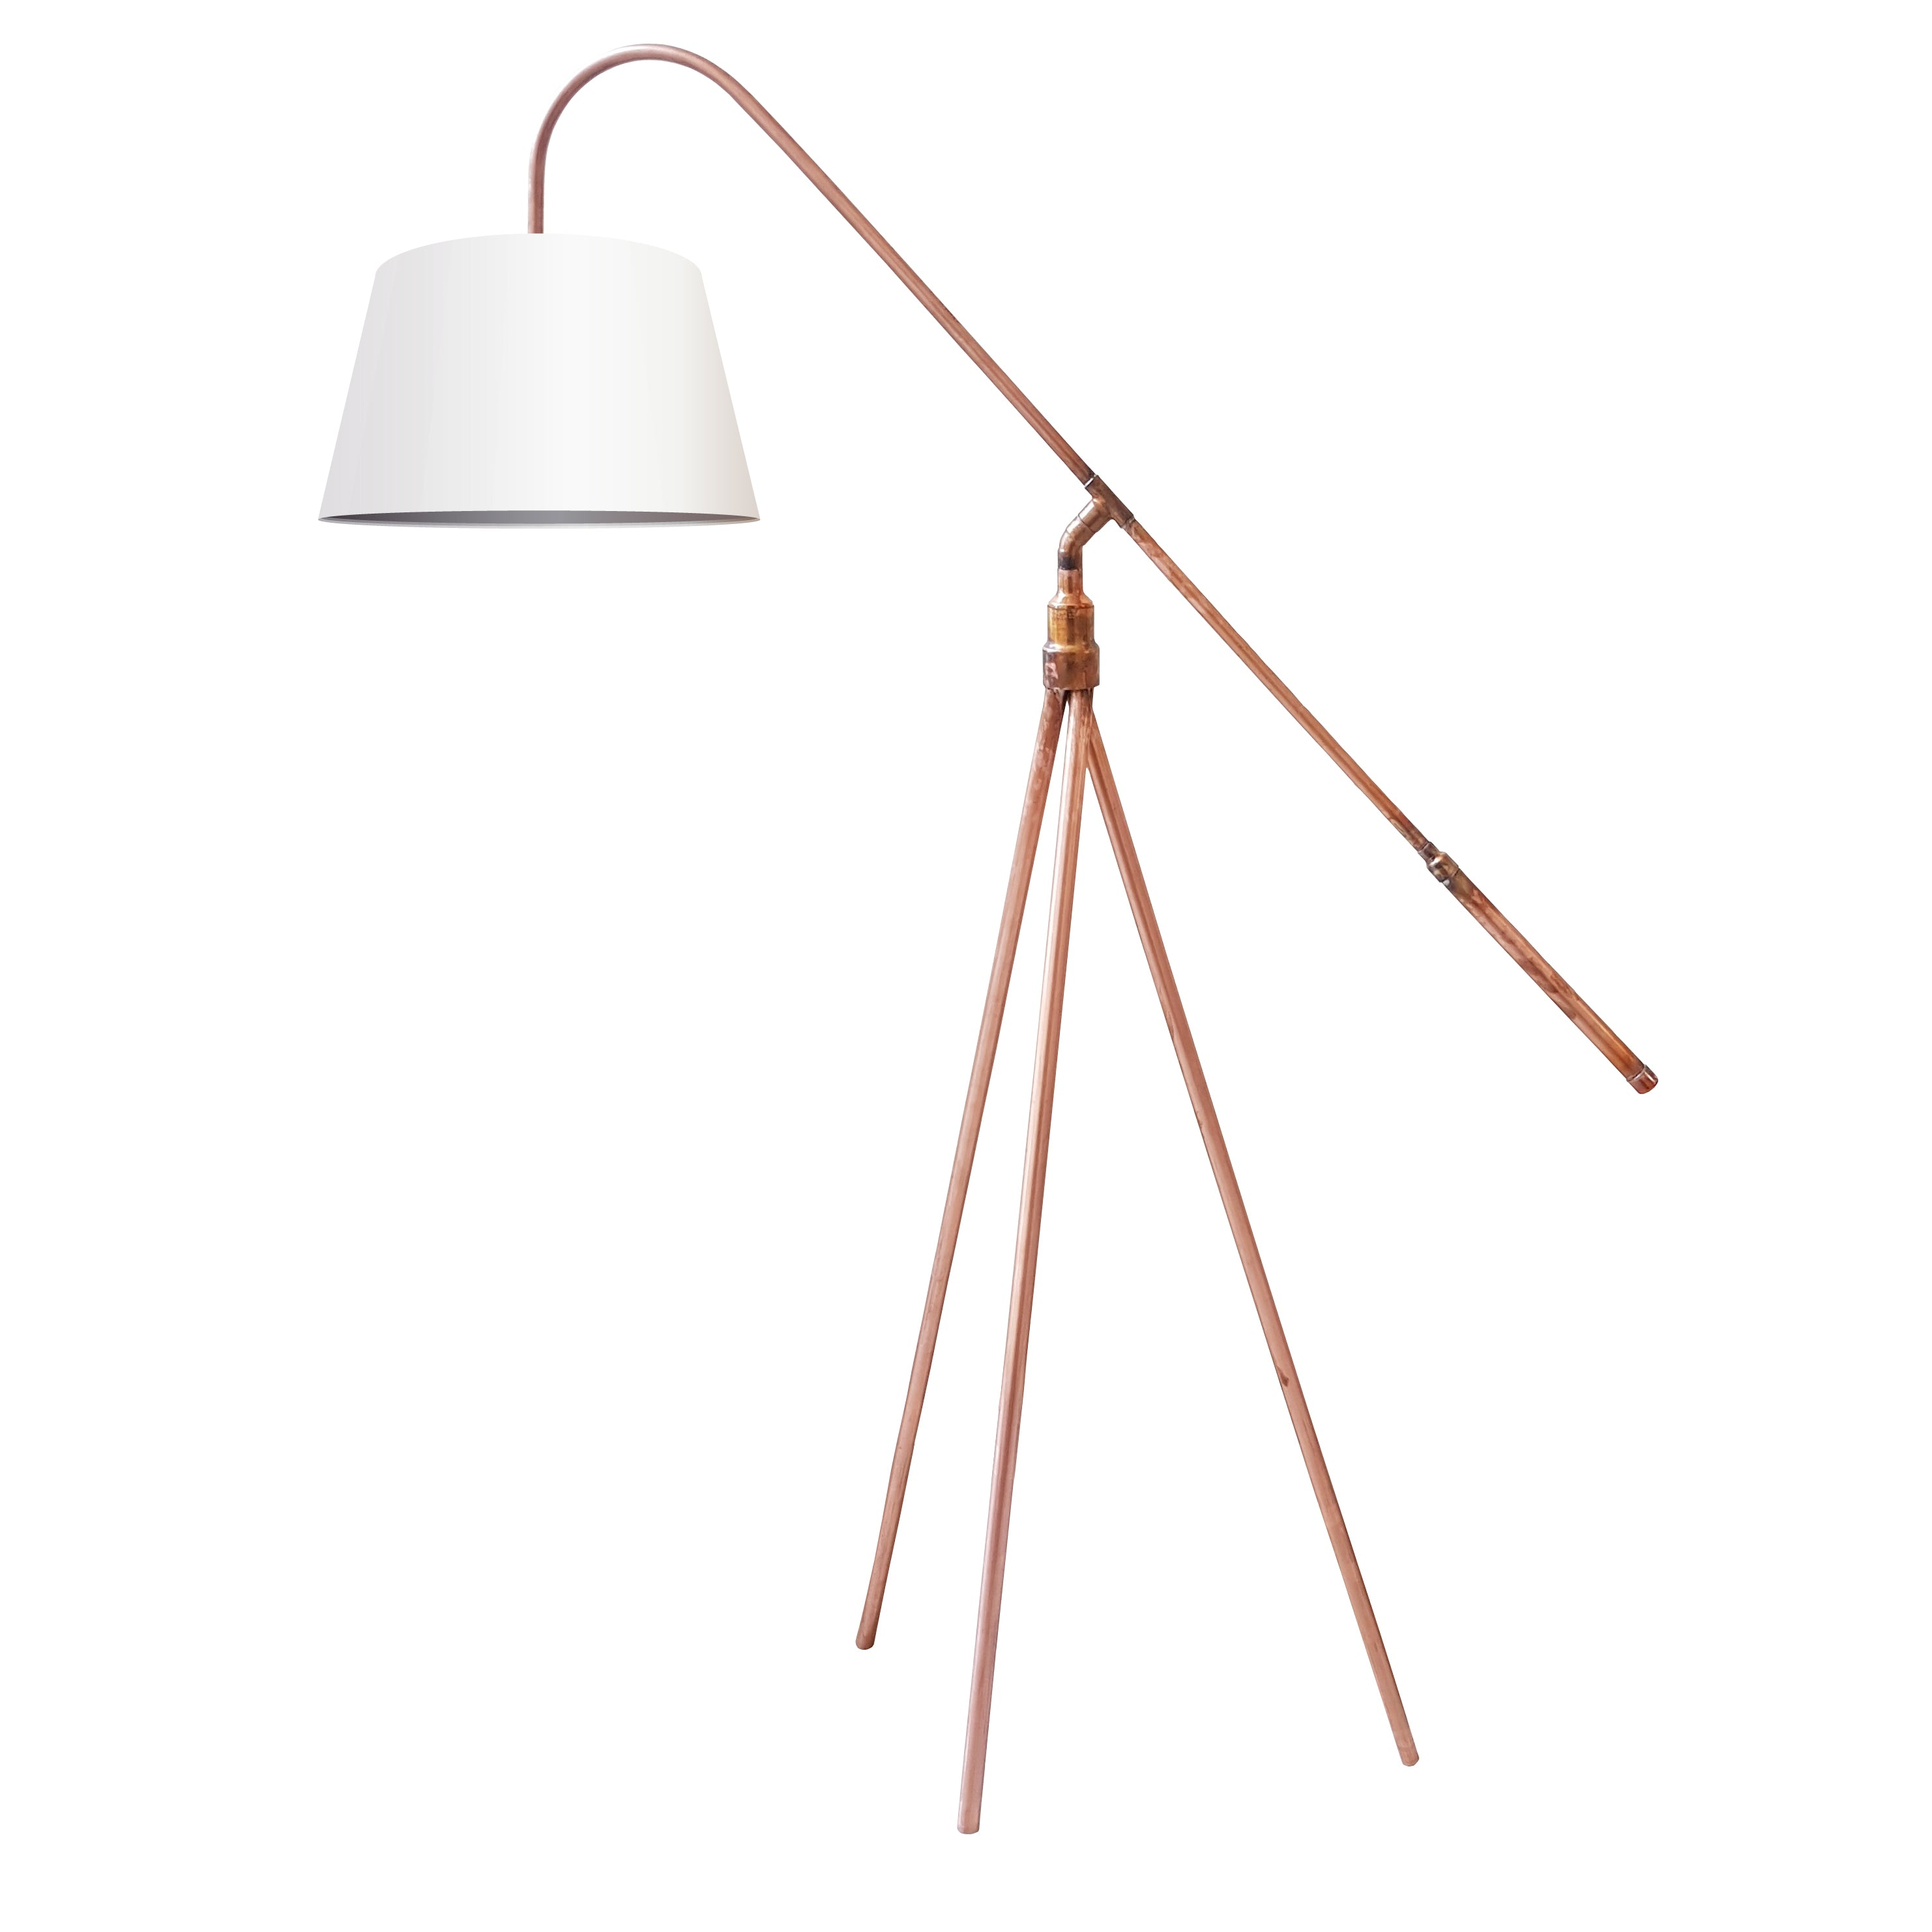 The balanced punk balanced copper tripod floor lamp steam punkd the balanced punk balanced copper tripod floor lamp for sale in south africa aloadofball Choice Image